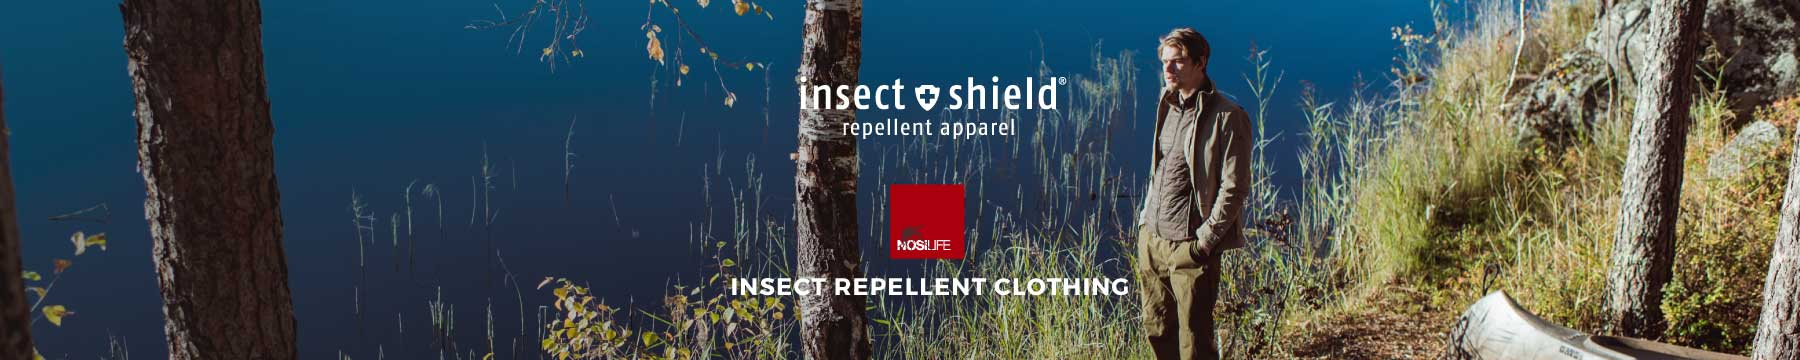 Insect Shield Insect Repellent Clothing